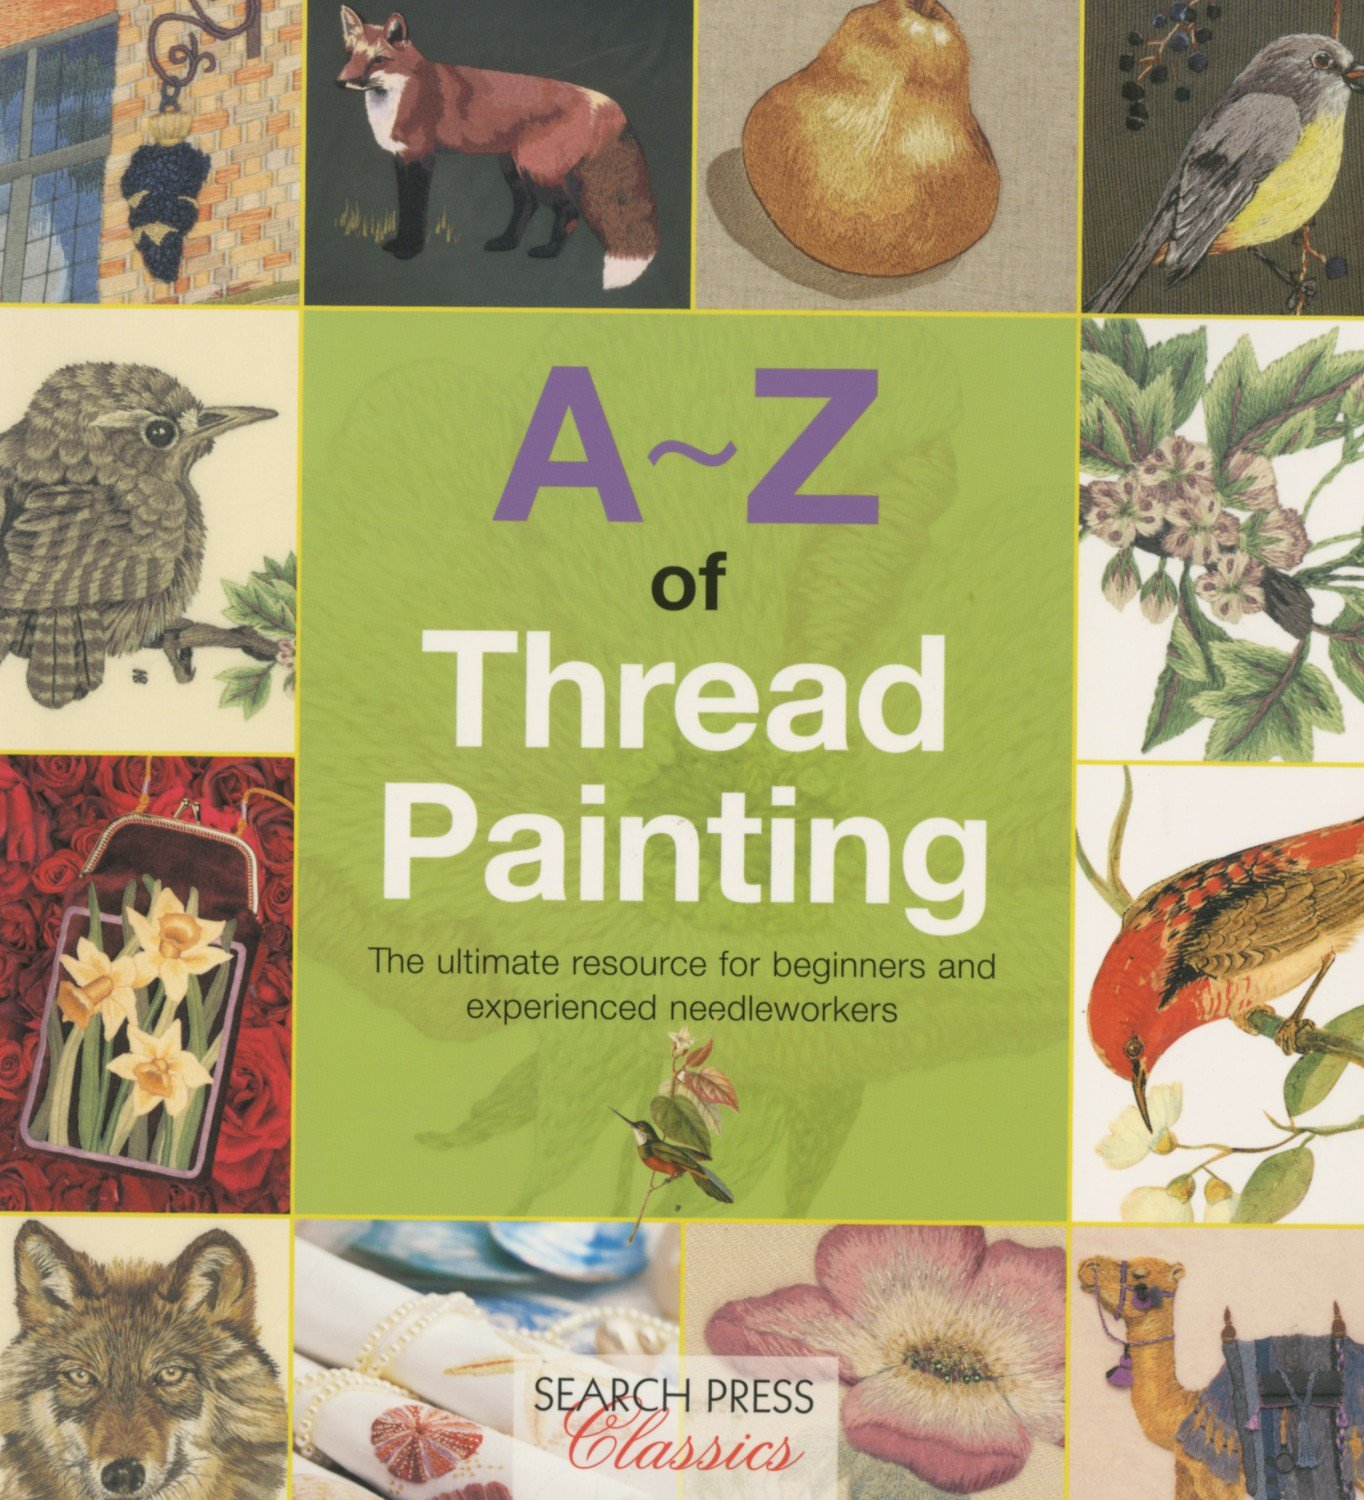 A-Z of Thread Painting